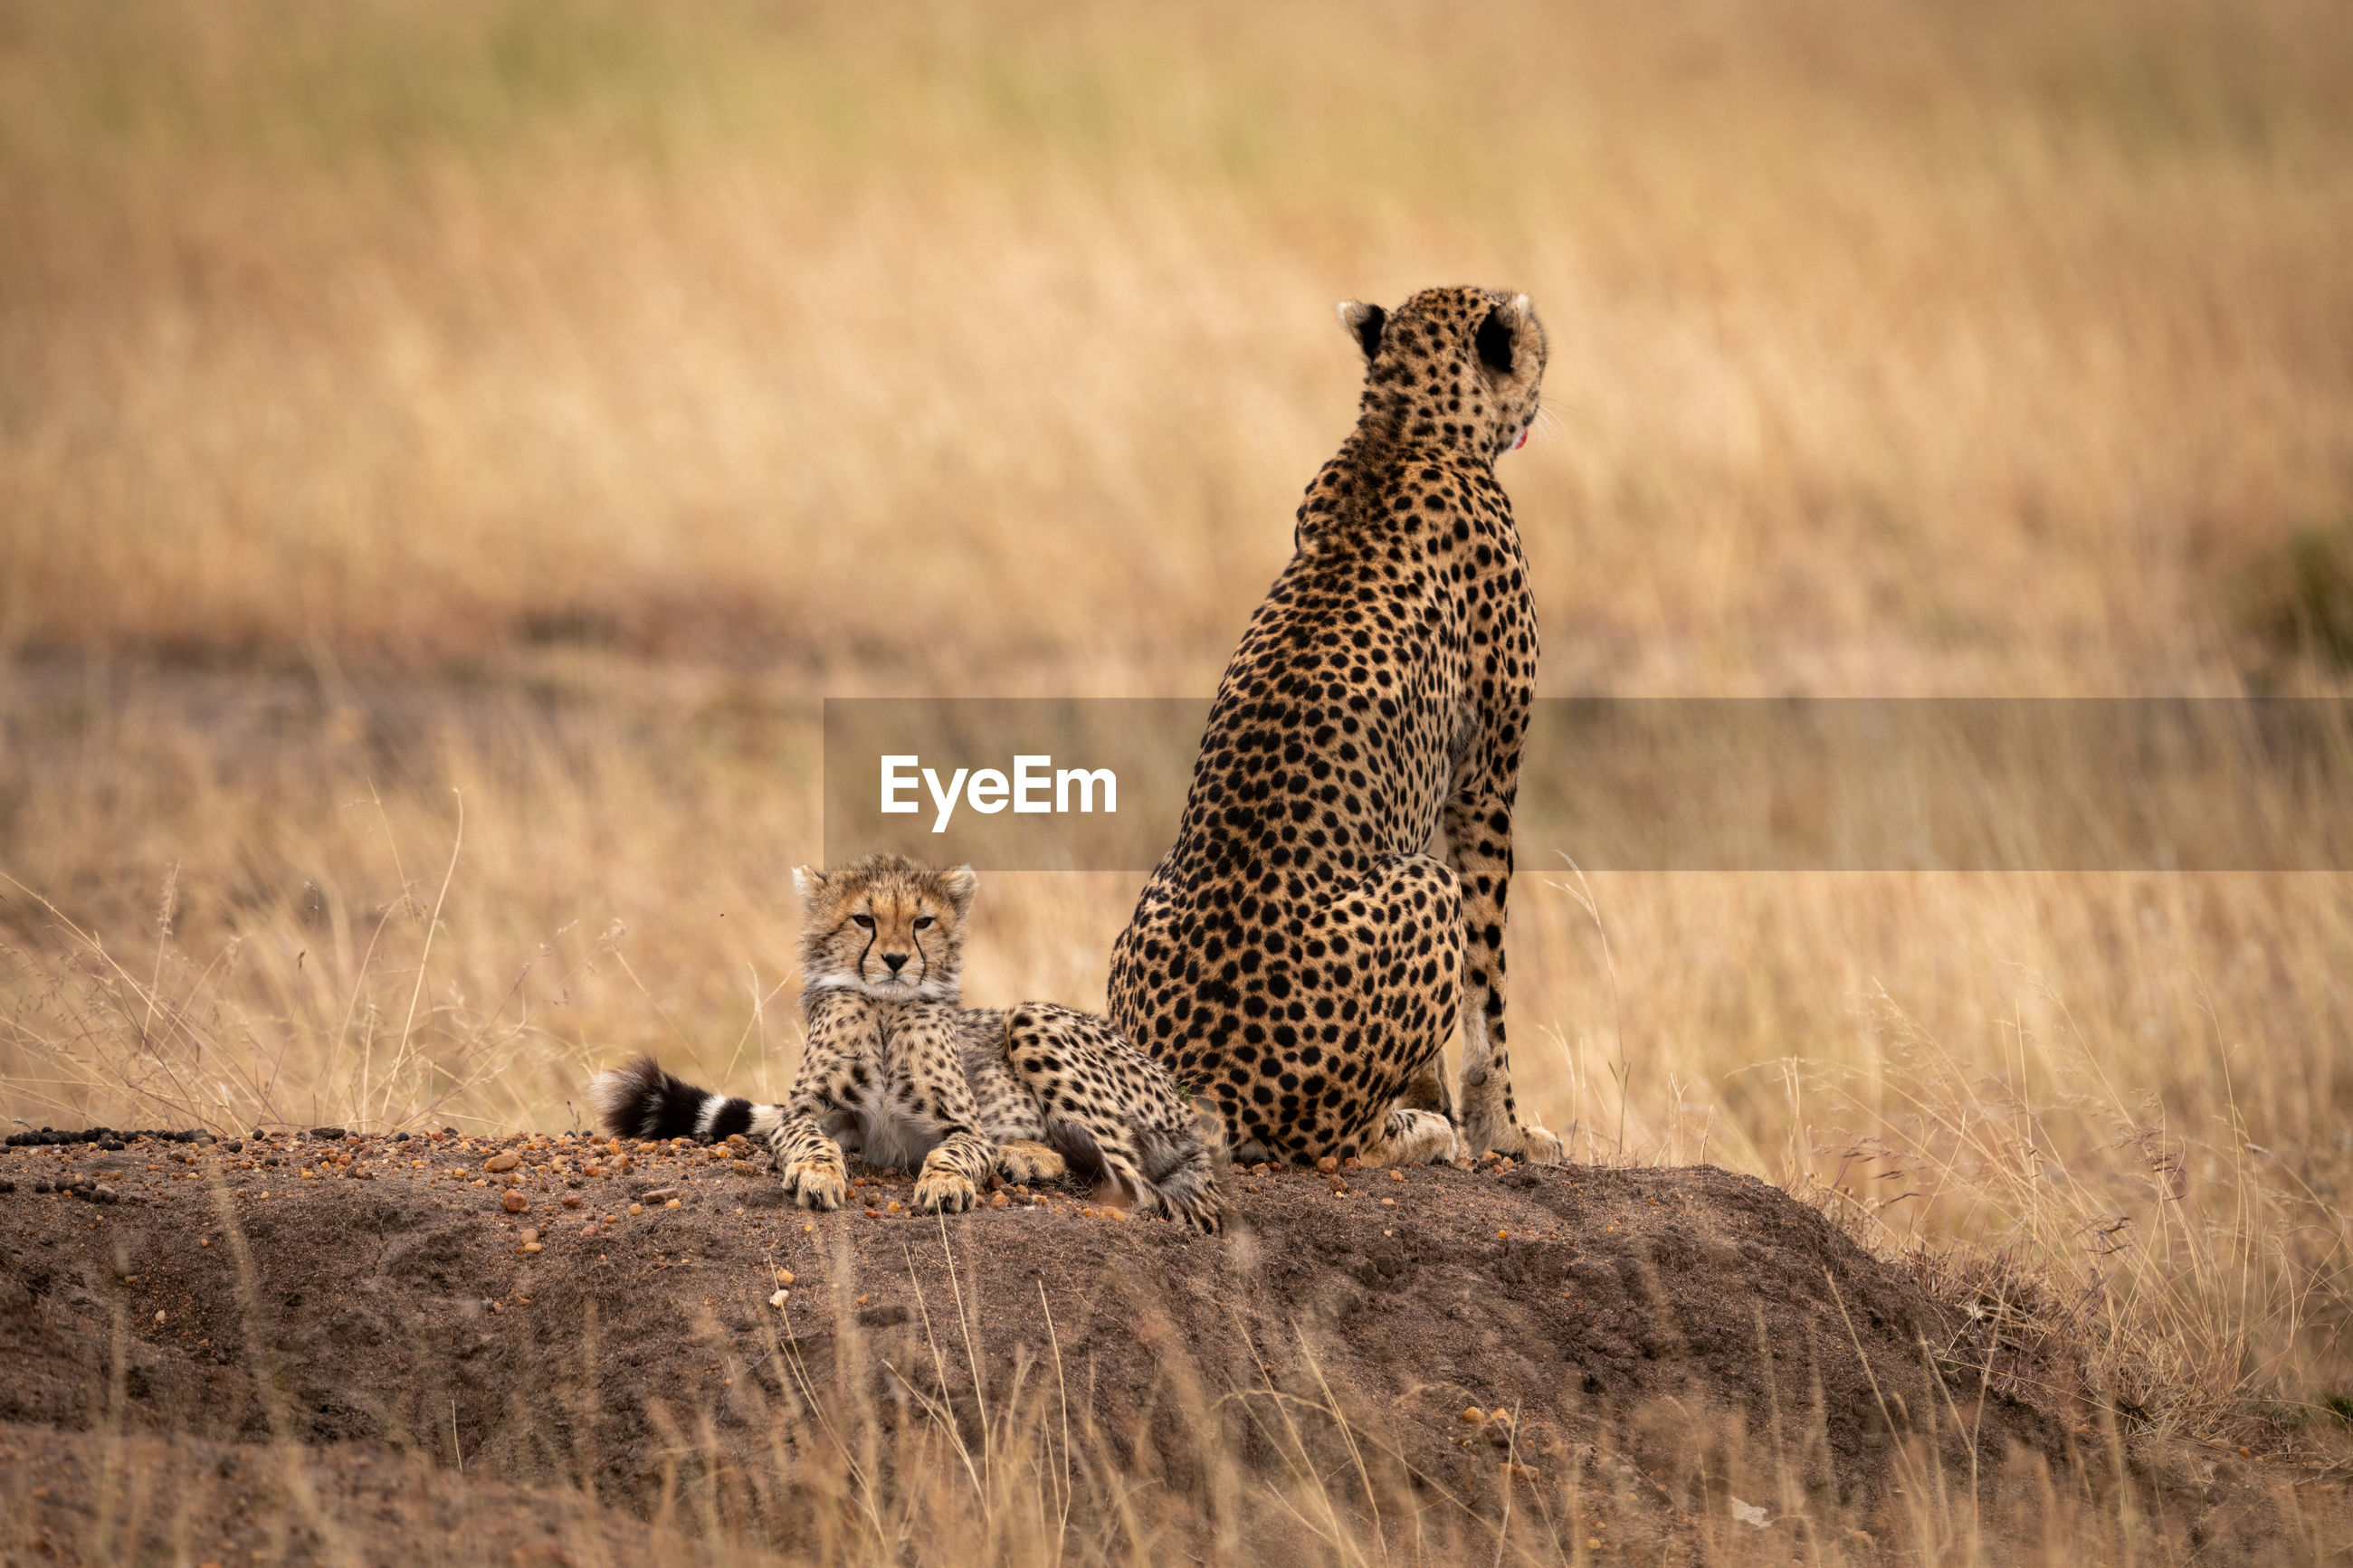 Cheetah with cub in forest